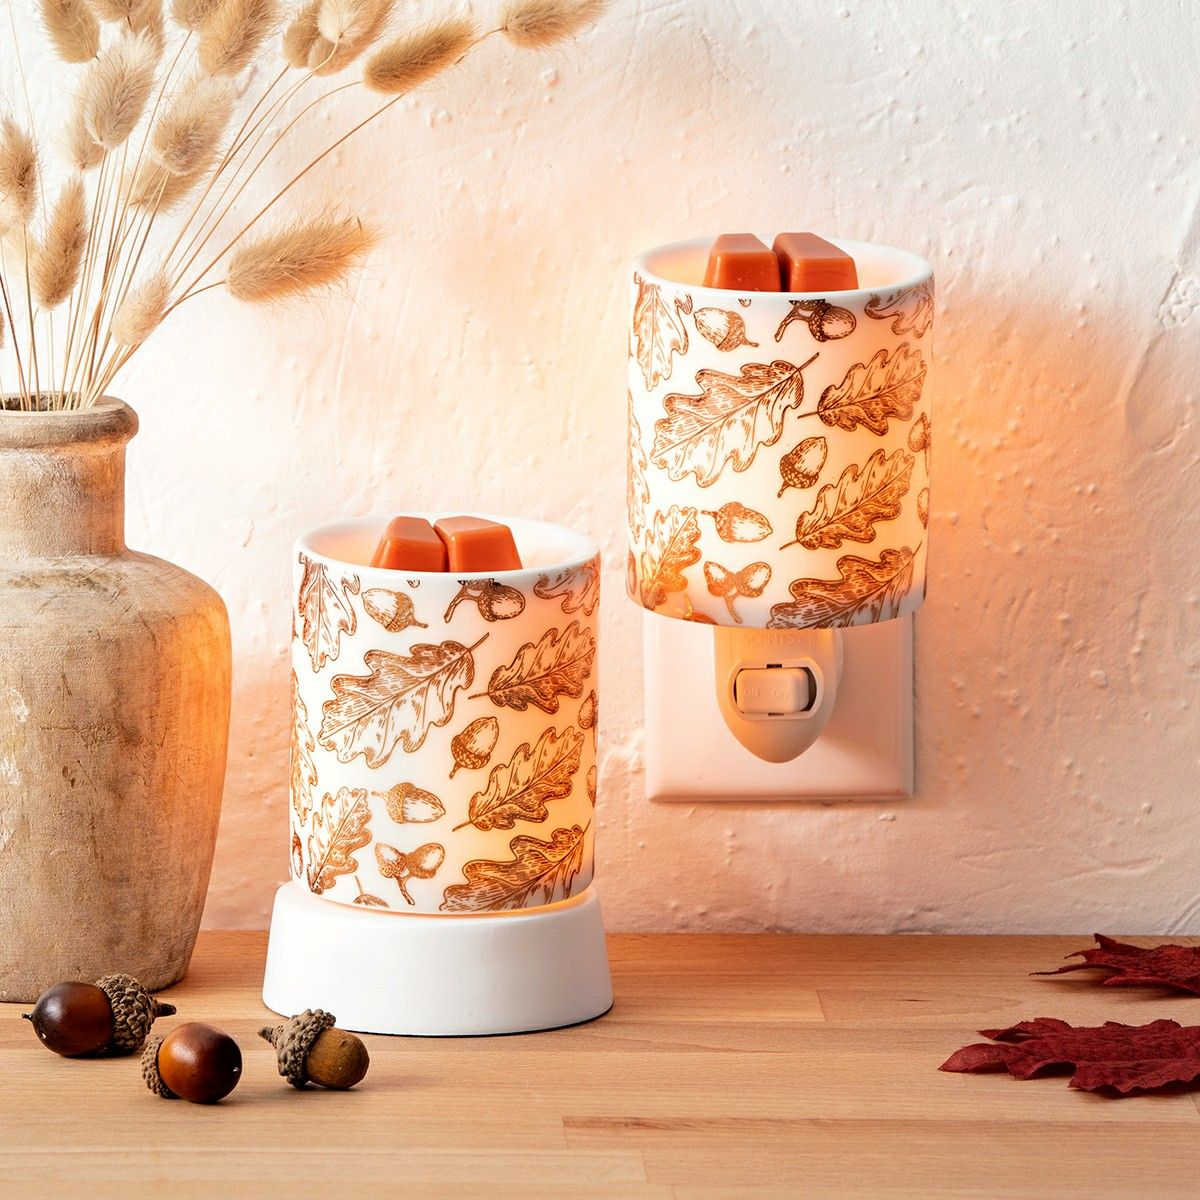 Fall Foliage Scentsy Mini Warmer in 2020 | Scentsy, Scented wax warmer, Scentsy  warmer